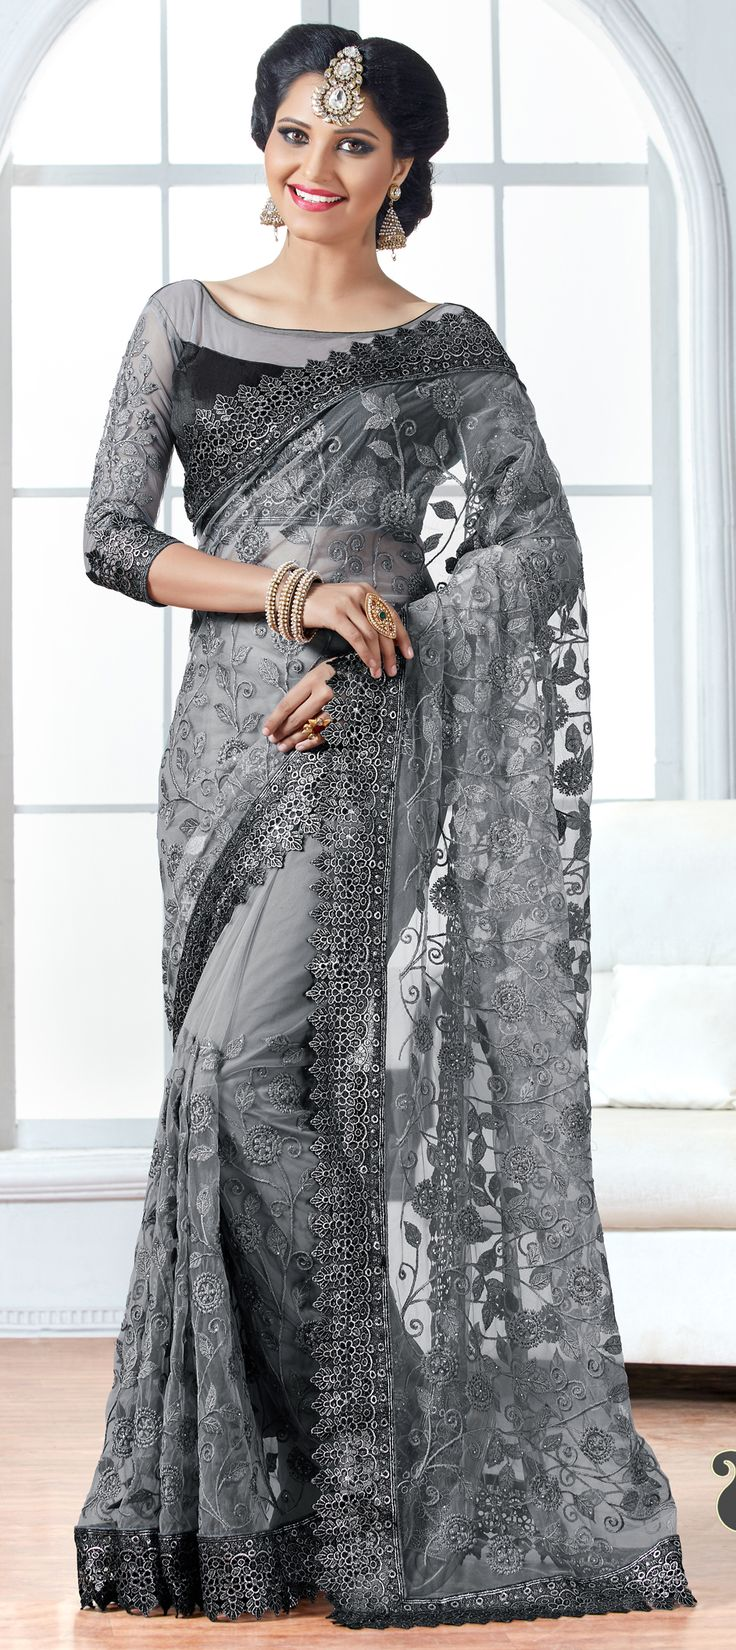 722203: Black and Grey color family Embroidered Sarees, Party Wear Sarees with matching unstitched blouse.